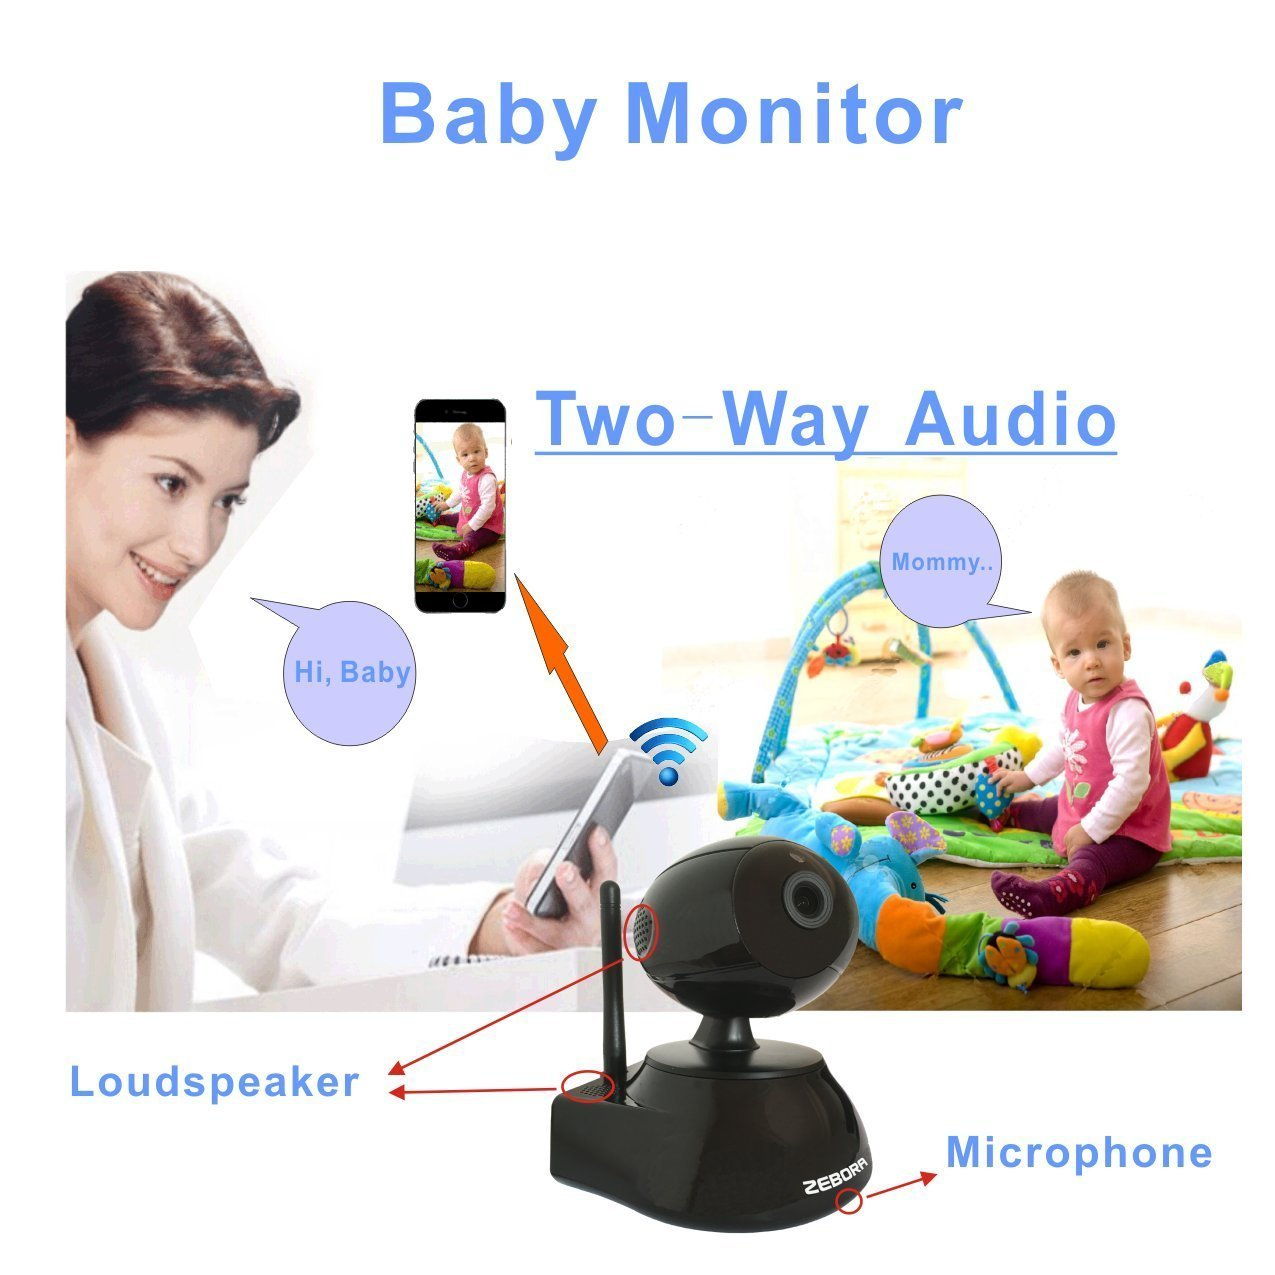 Zebora 960P Remote Controlled Internet WiFi Wireless Network//IP Camera for Surveillance,Home Security,Pet,Nanny and Baby Monitor with Motion Detection,Two-way Audio and Night Vision 2016 New Release